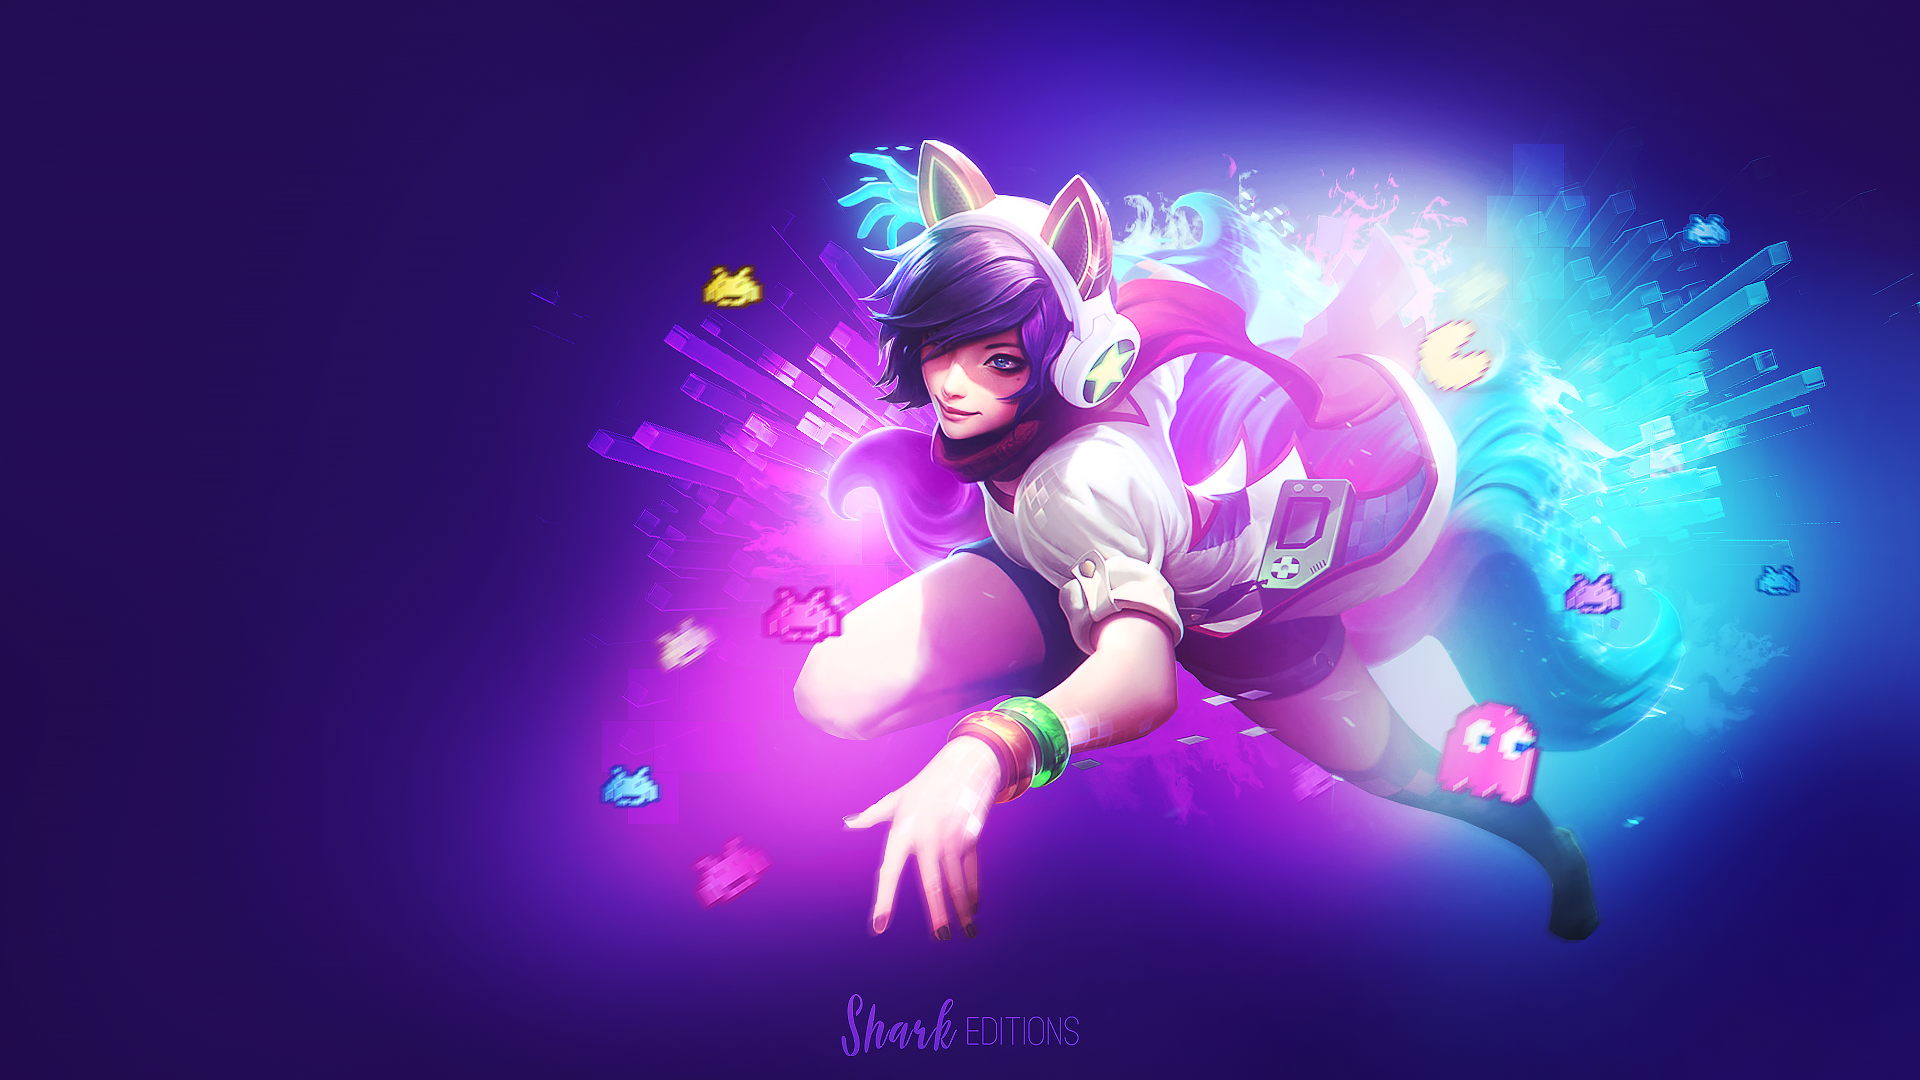 arcade ahri wallpaper by leftlucy on deviantart